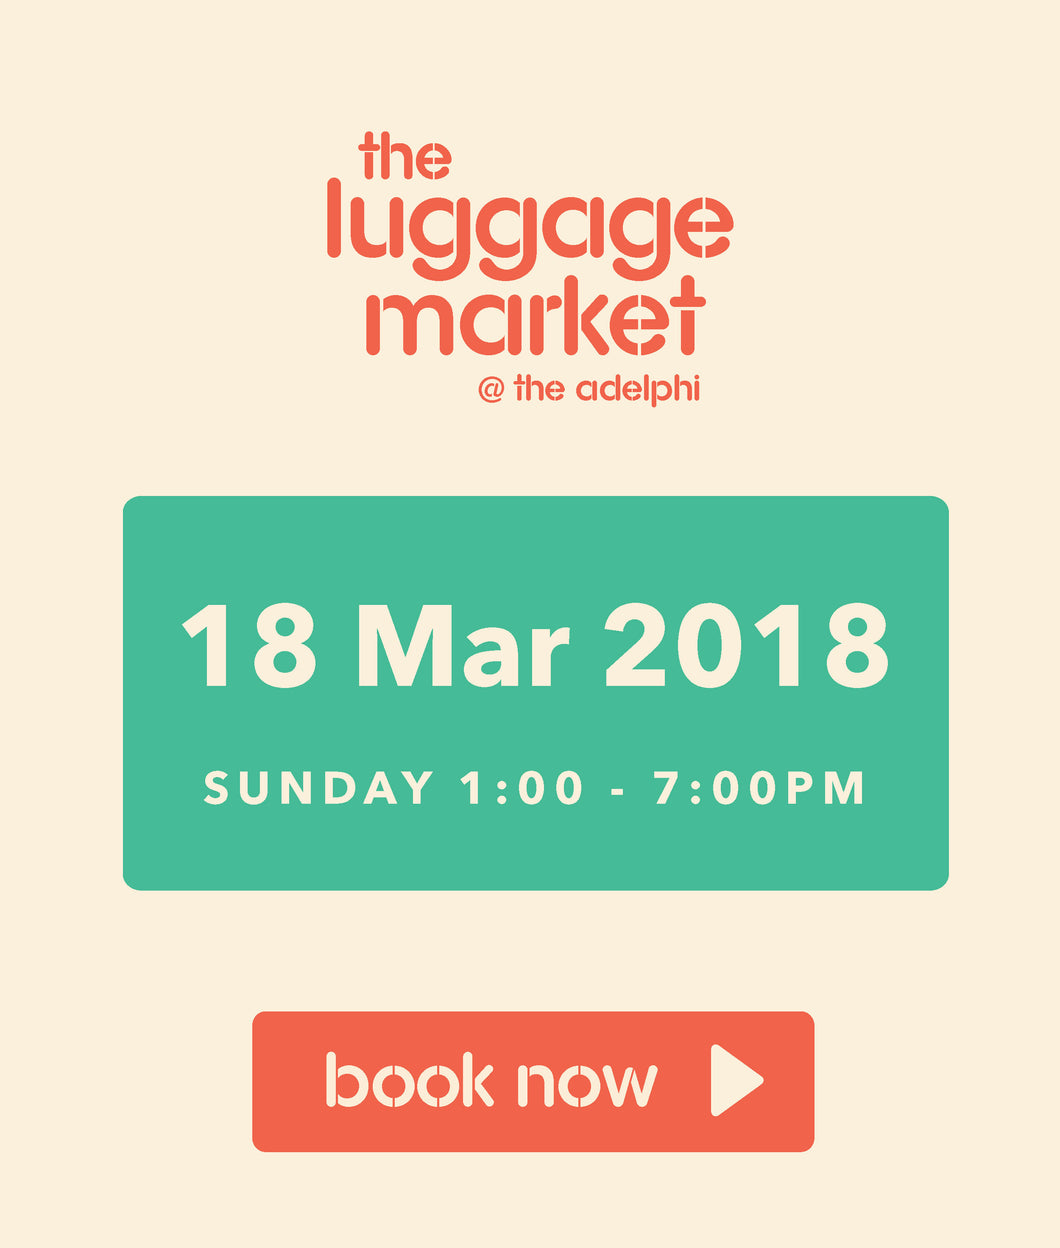 The Luggage Market Booth | 18 Mar 2018